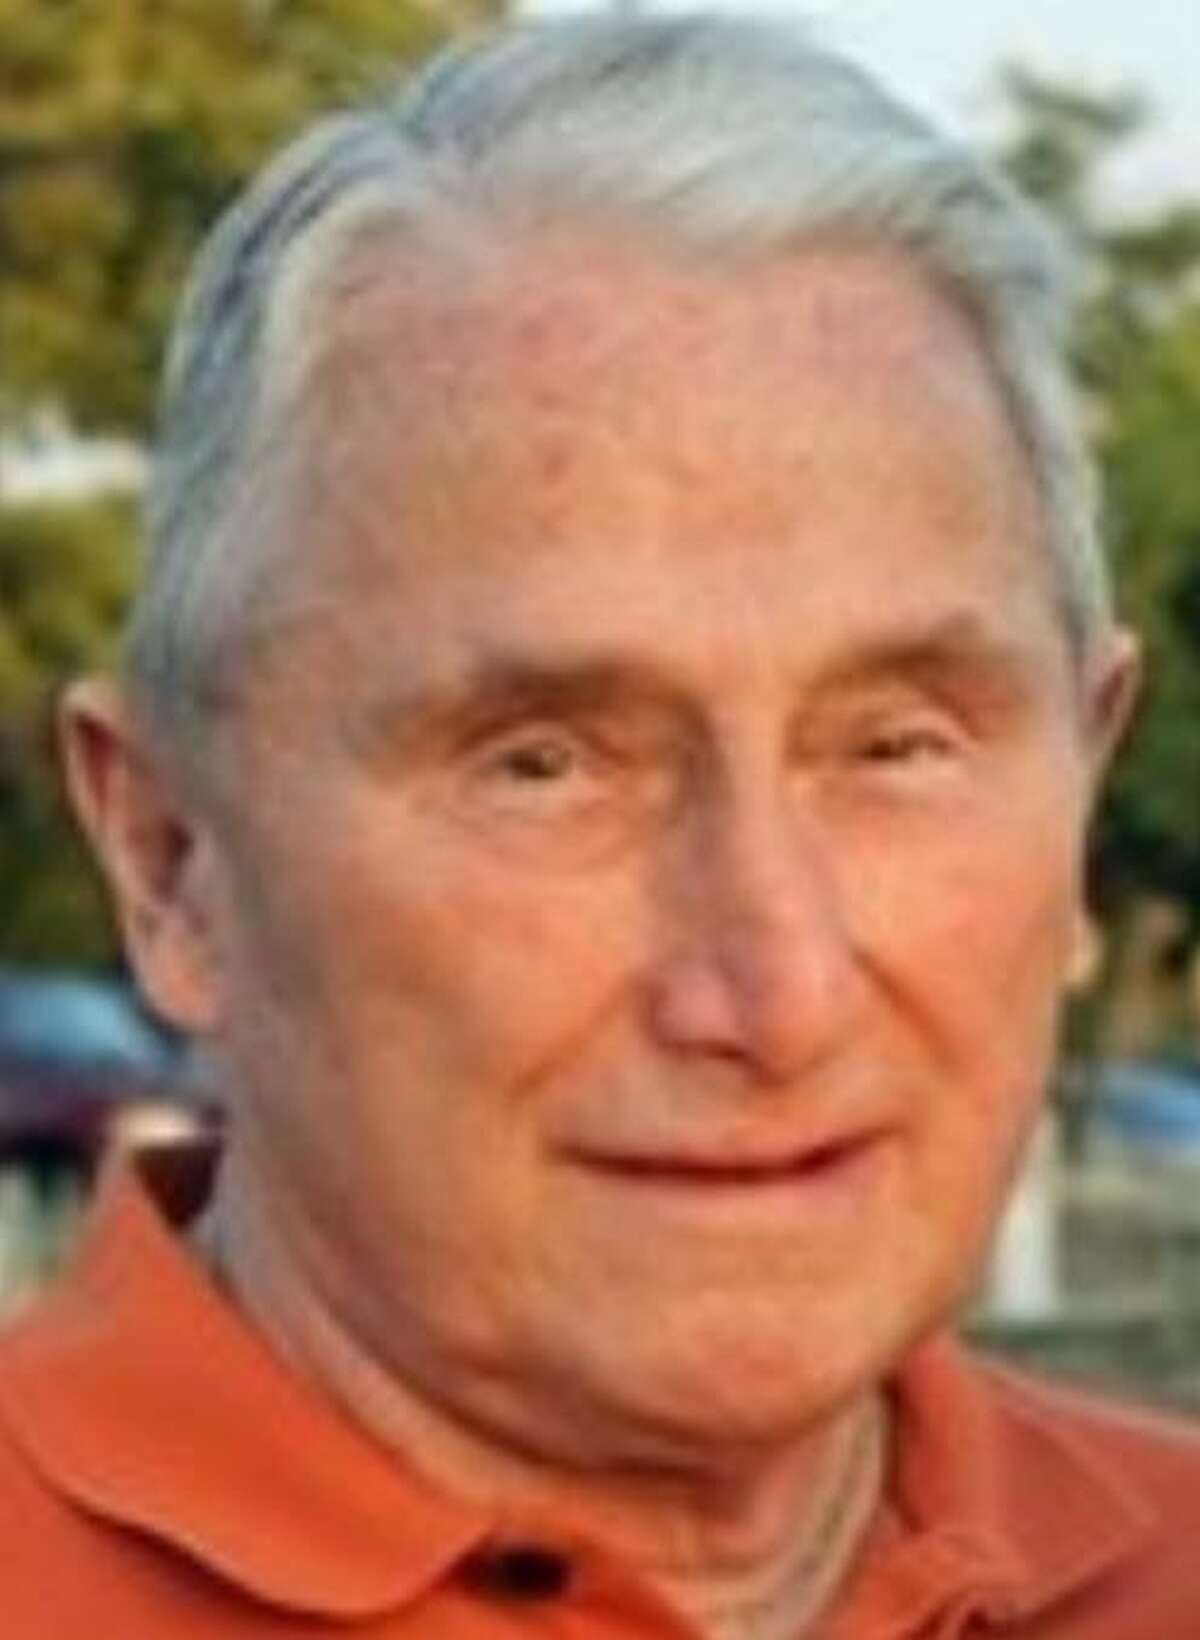 A photo of Bernard H. Williamson, of Derby, Conn., who died at the age of 82 on Saturday, April 27, 2019.